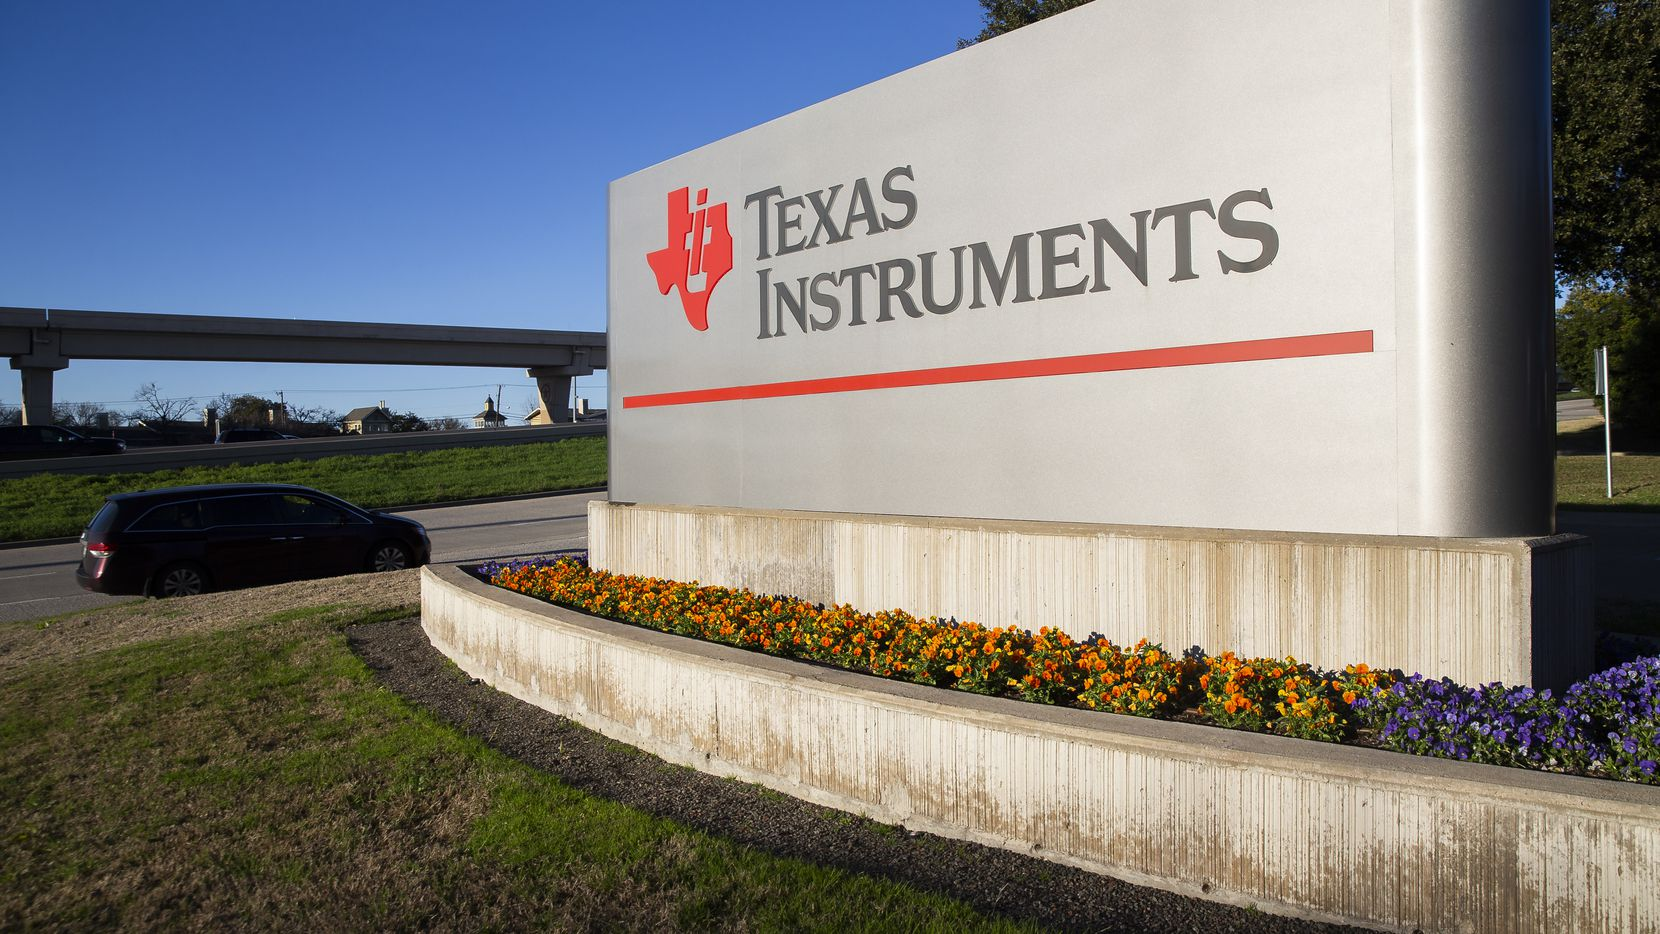 Entrance to the Texas Instruments headquarters in Dallas.